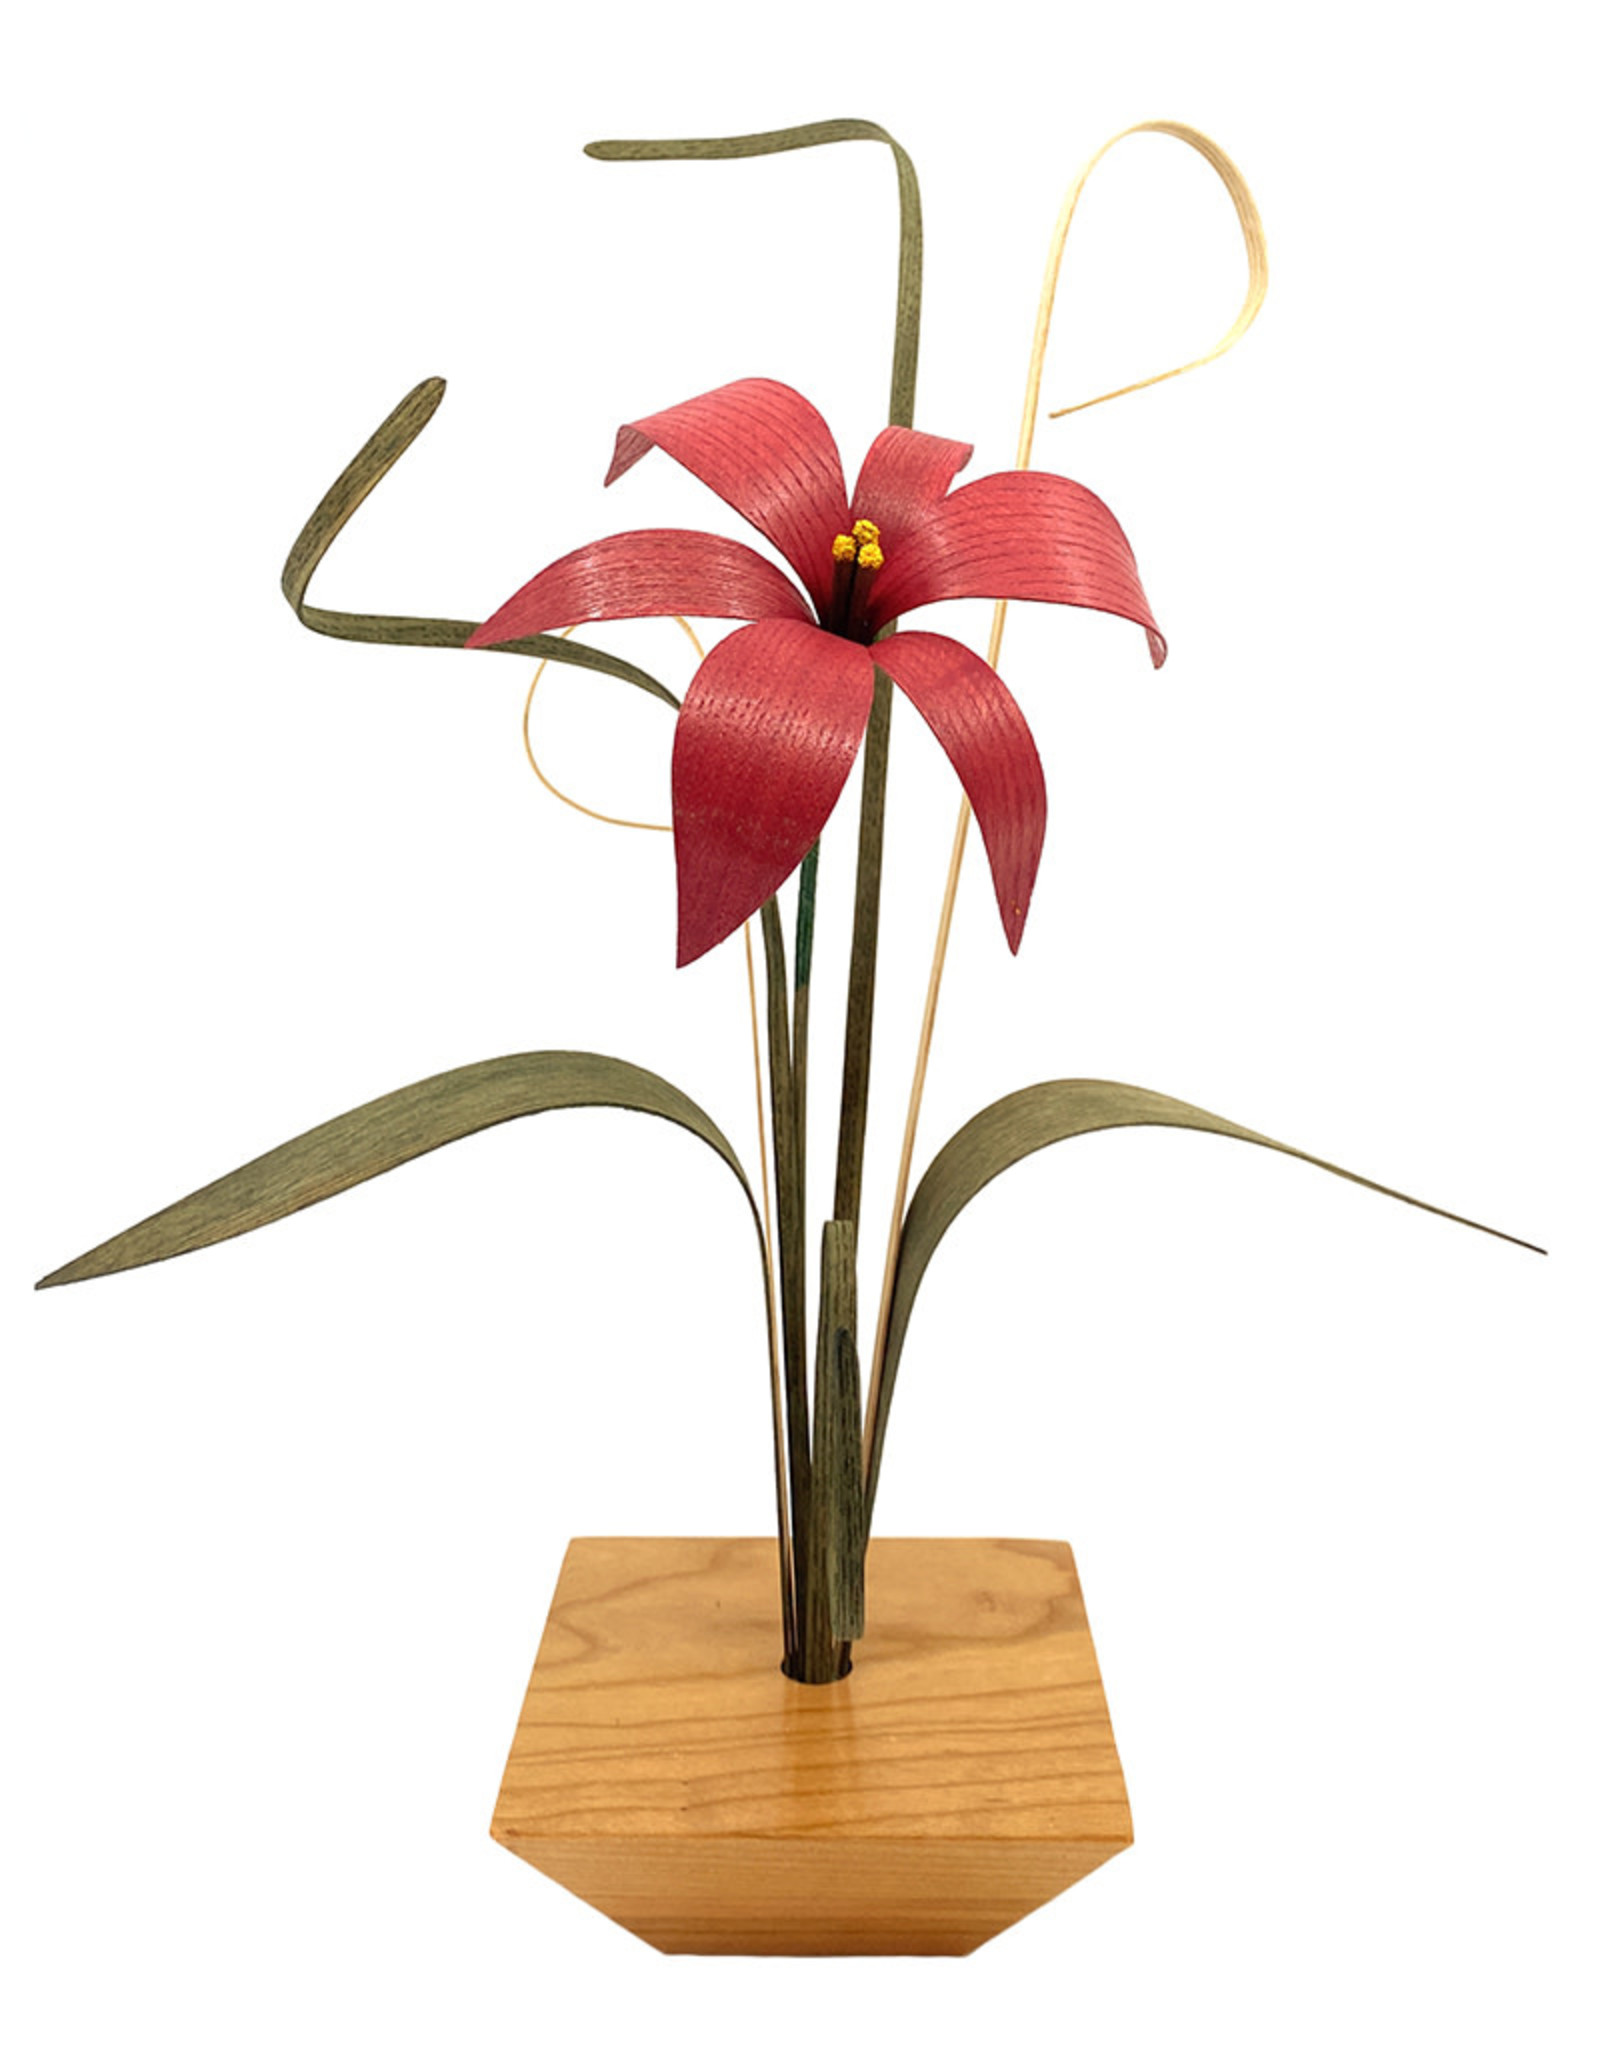 WOOD WILDFLOWERS SIMPLY ZEN WOOD FLOWER ARRANGEMENT WITH 1 MAUVE LILY